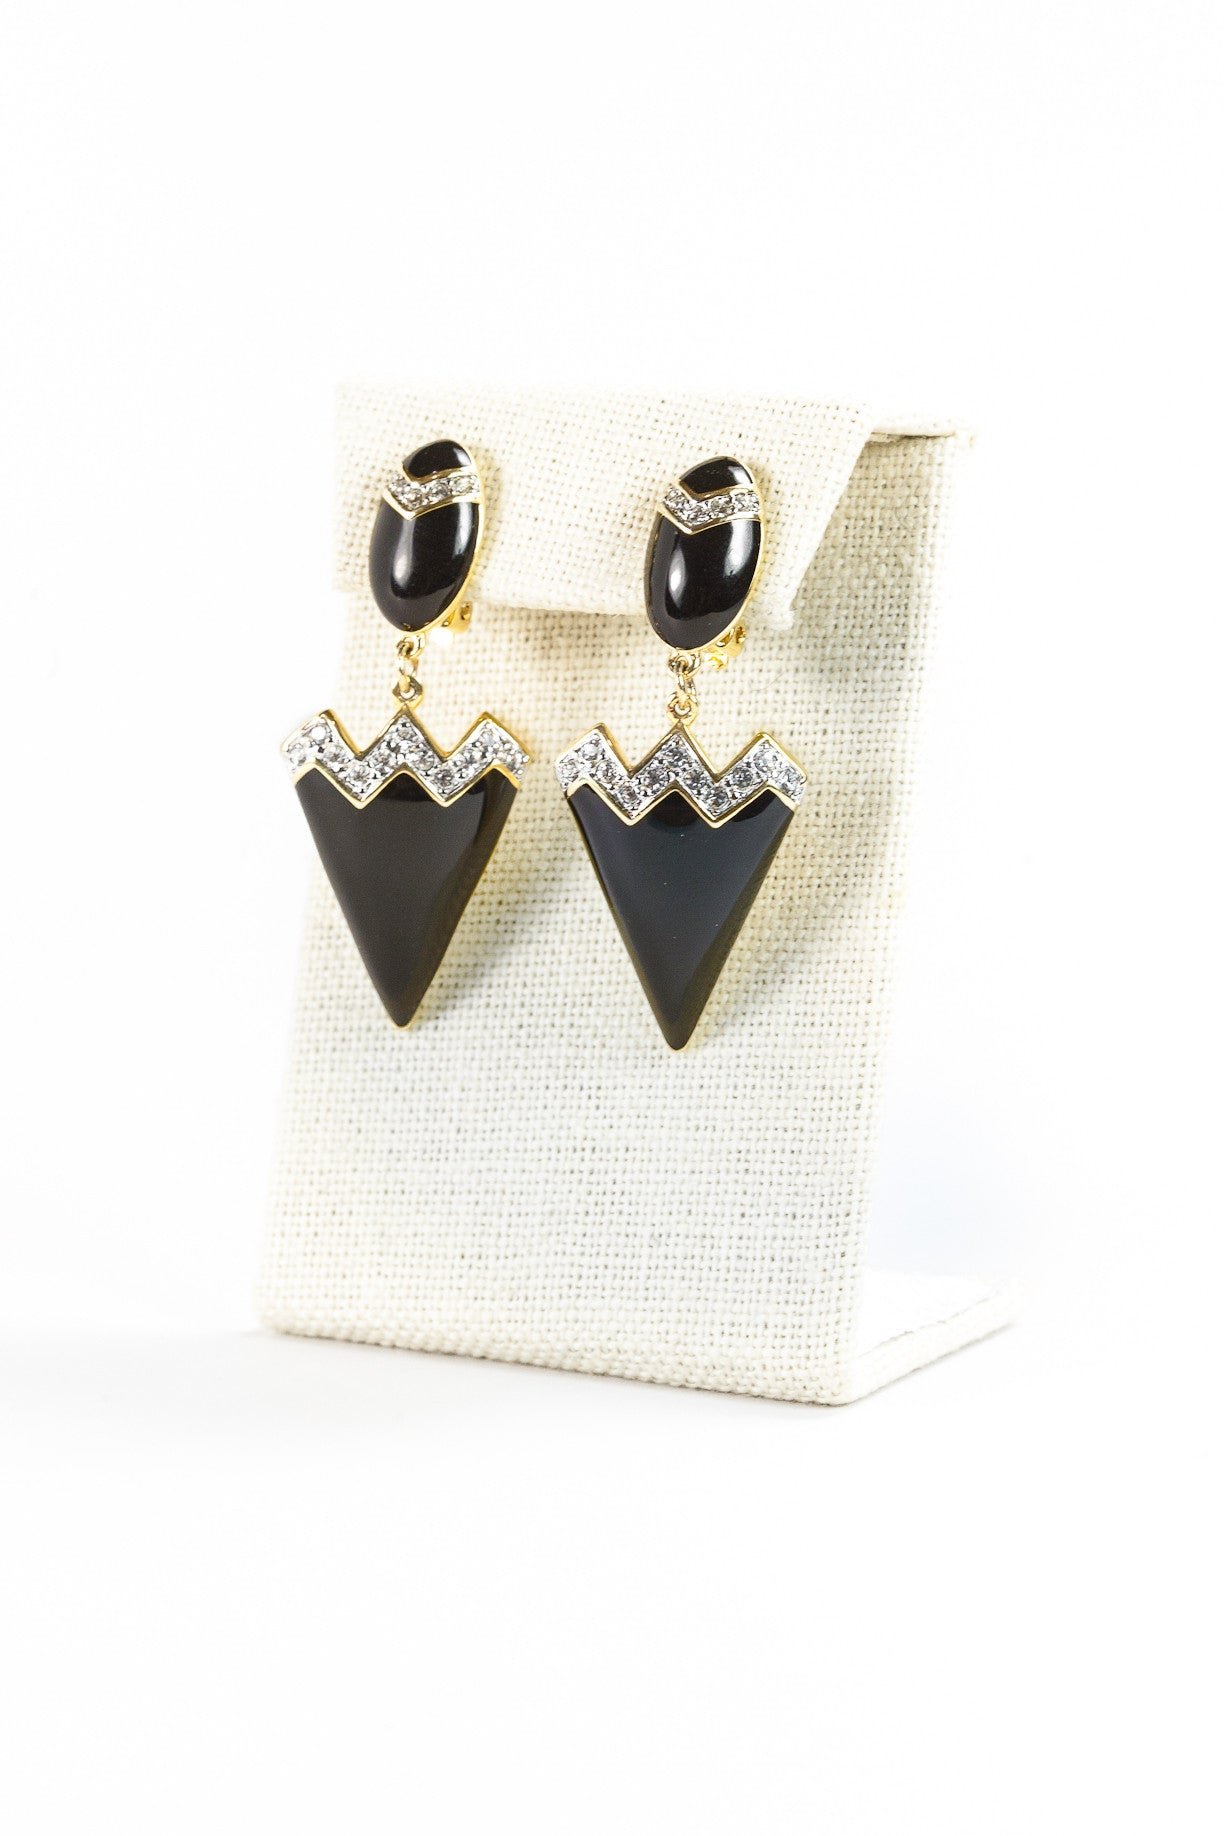 70's__Vintage__Black Triangle Rhinestone Clip On Earrings